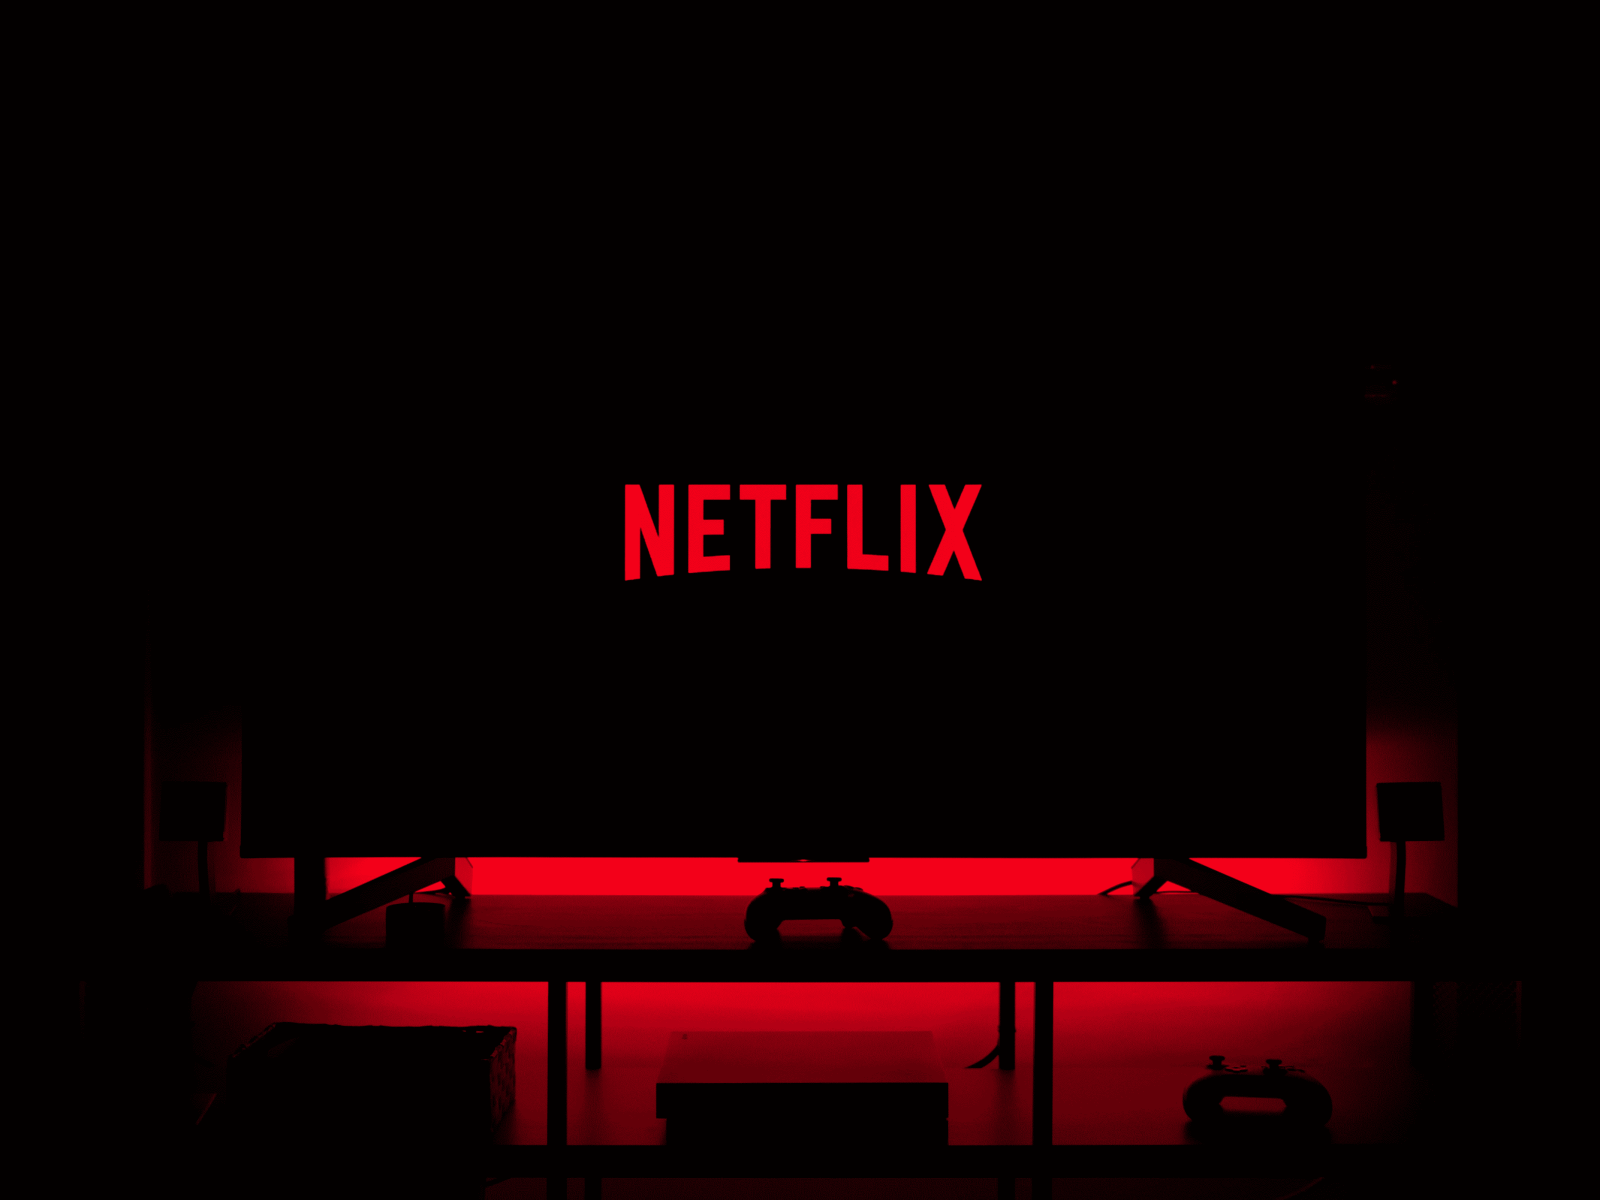 sci-fi Netflix shows, Most Thrilling Sci-Fi Netflix Shows to Binge